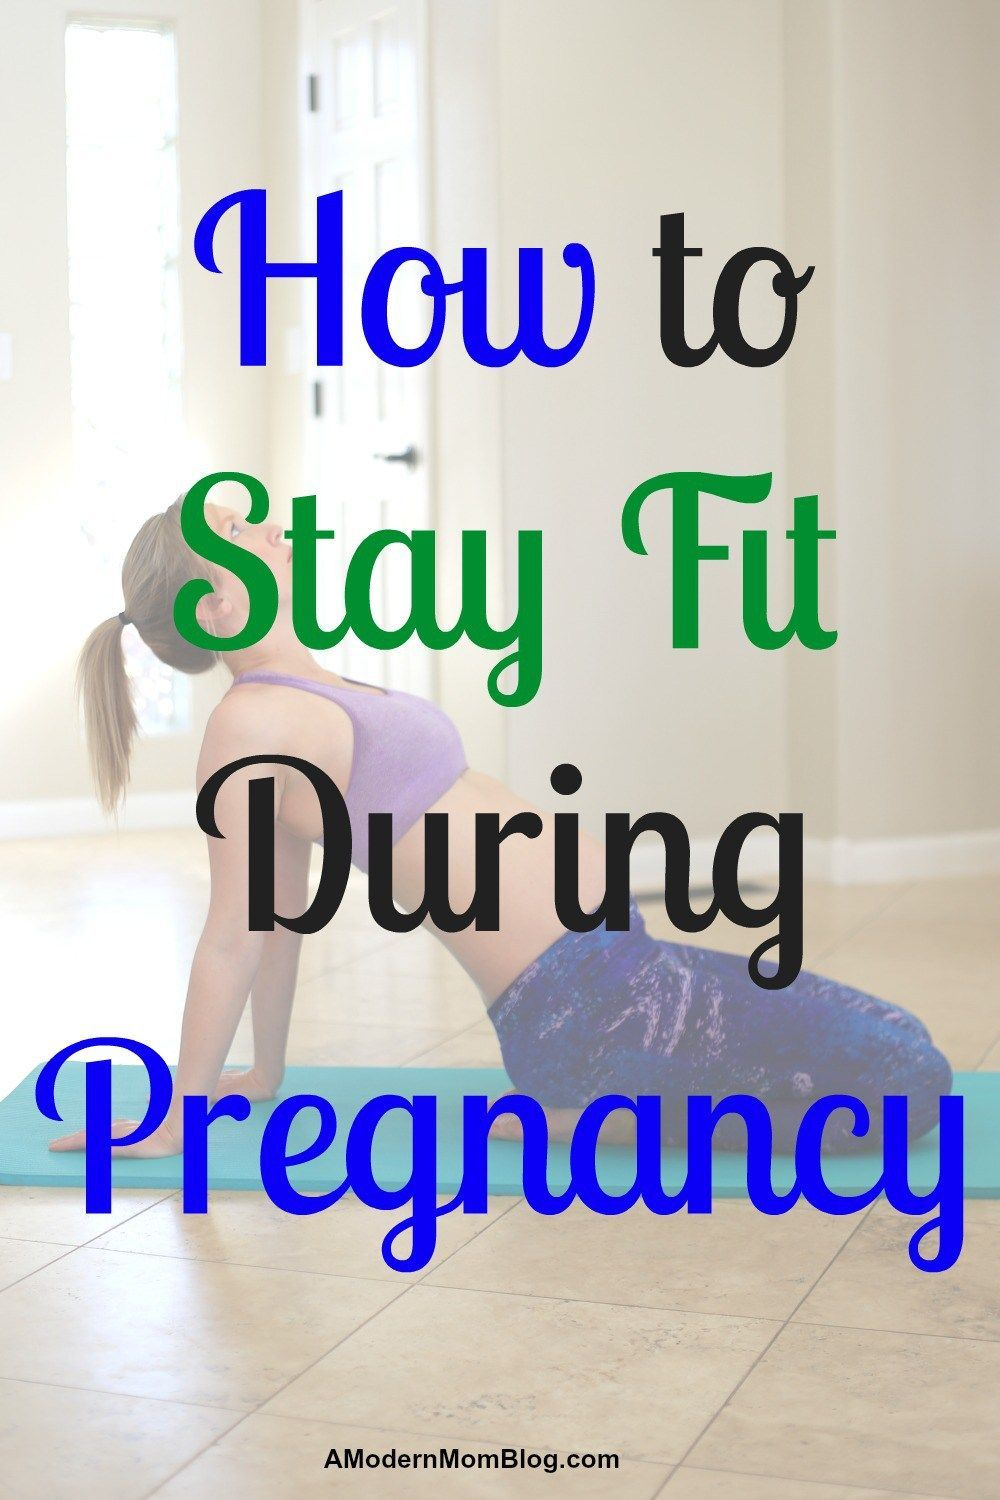 Fit Pregnancy - How I'm Staying Fit While Pregnant with